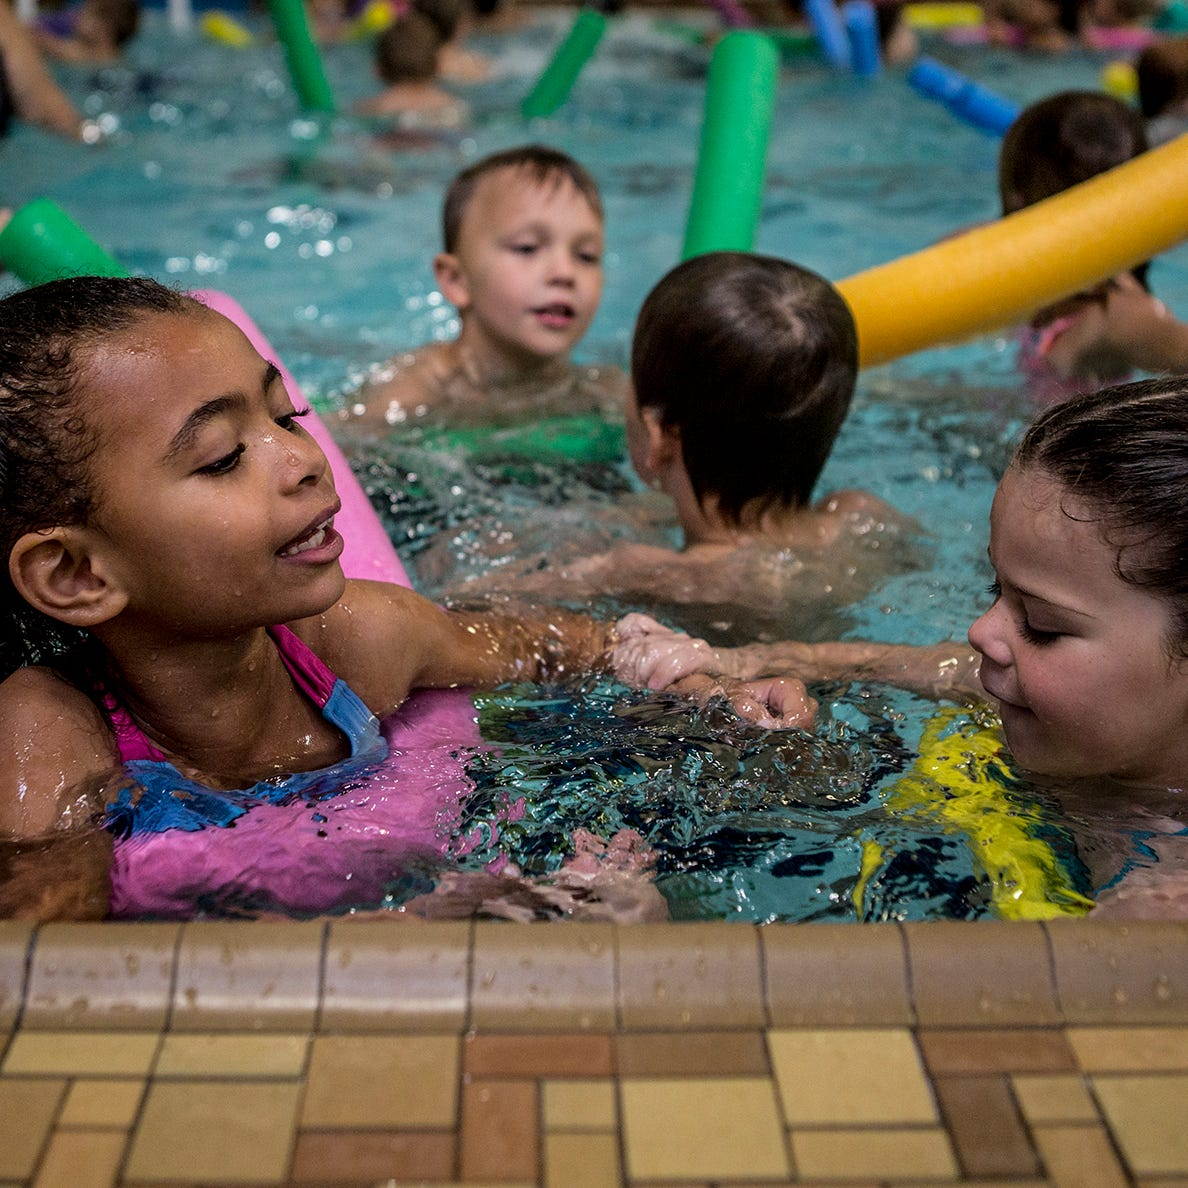 Splish, splash: When and why should children learn to swim?